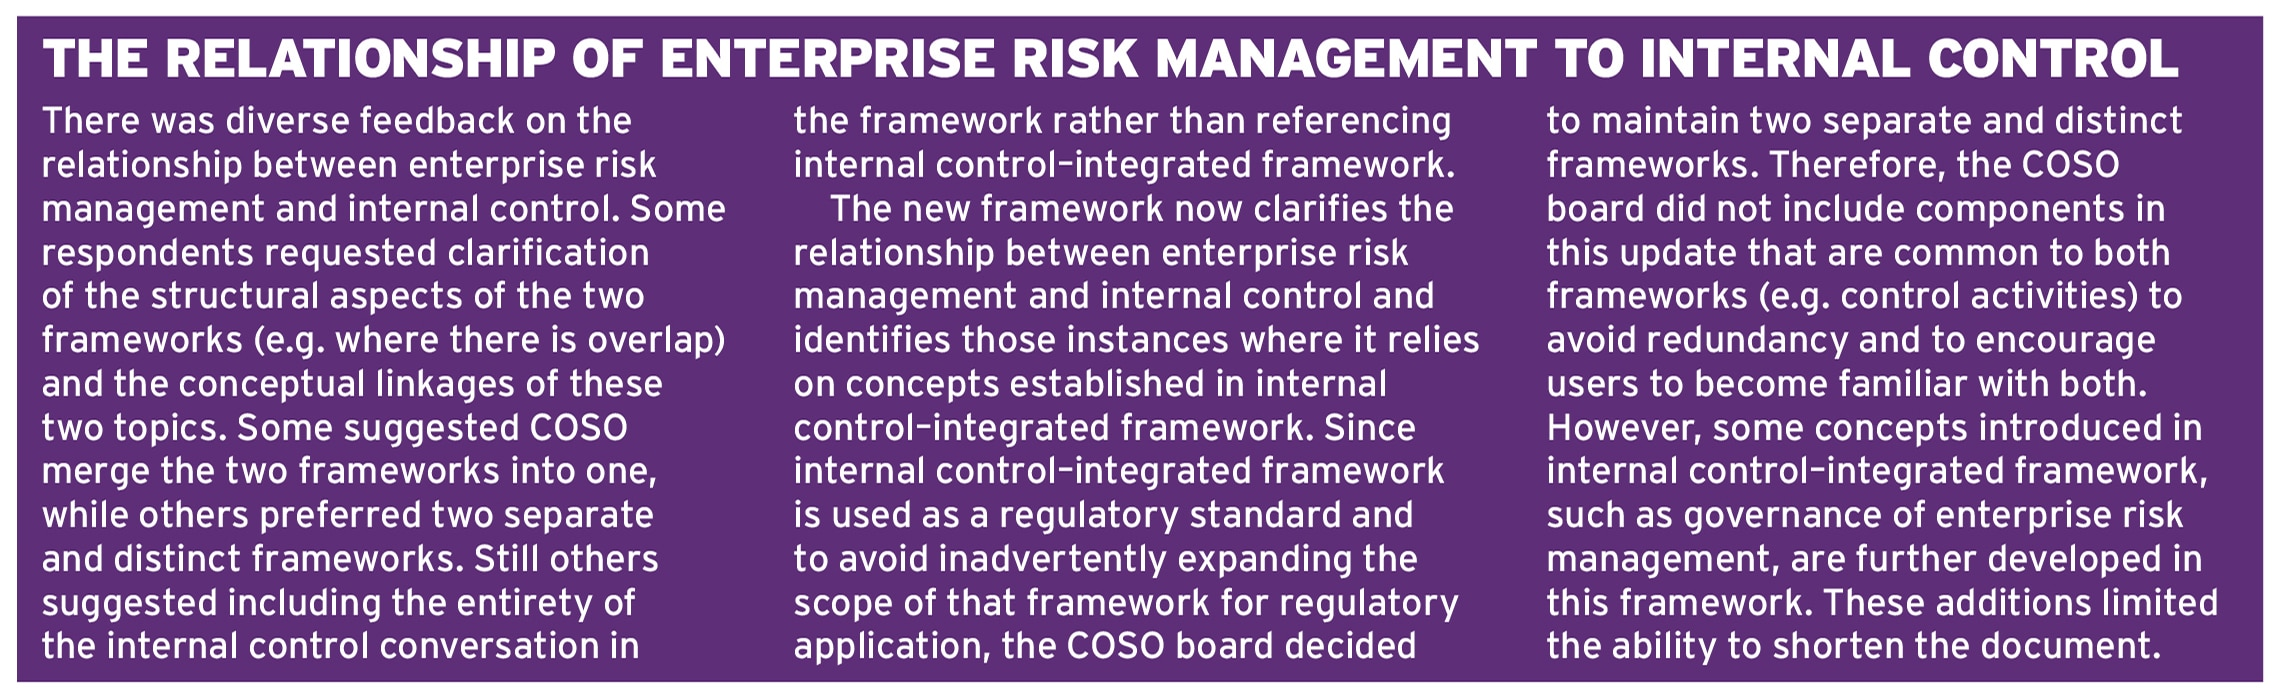 COSO ERM 2017 Ethical Boardroom